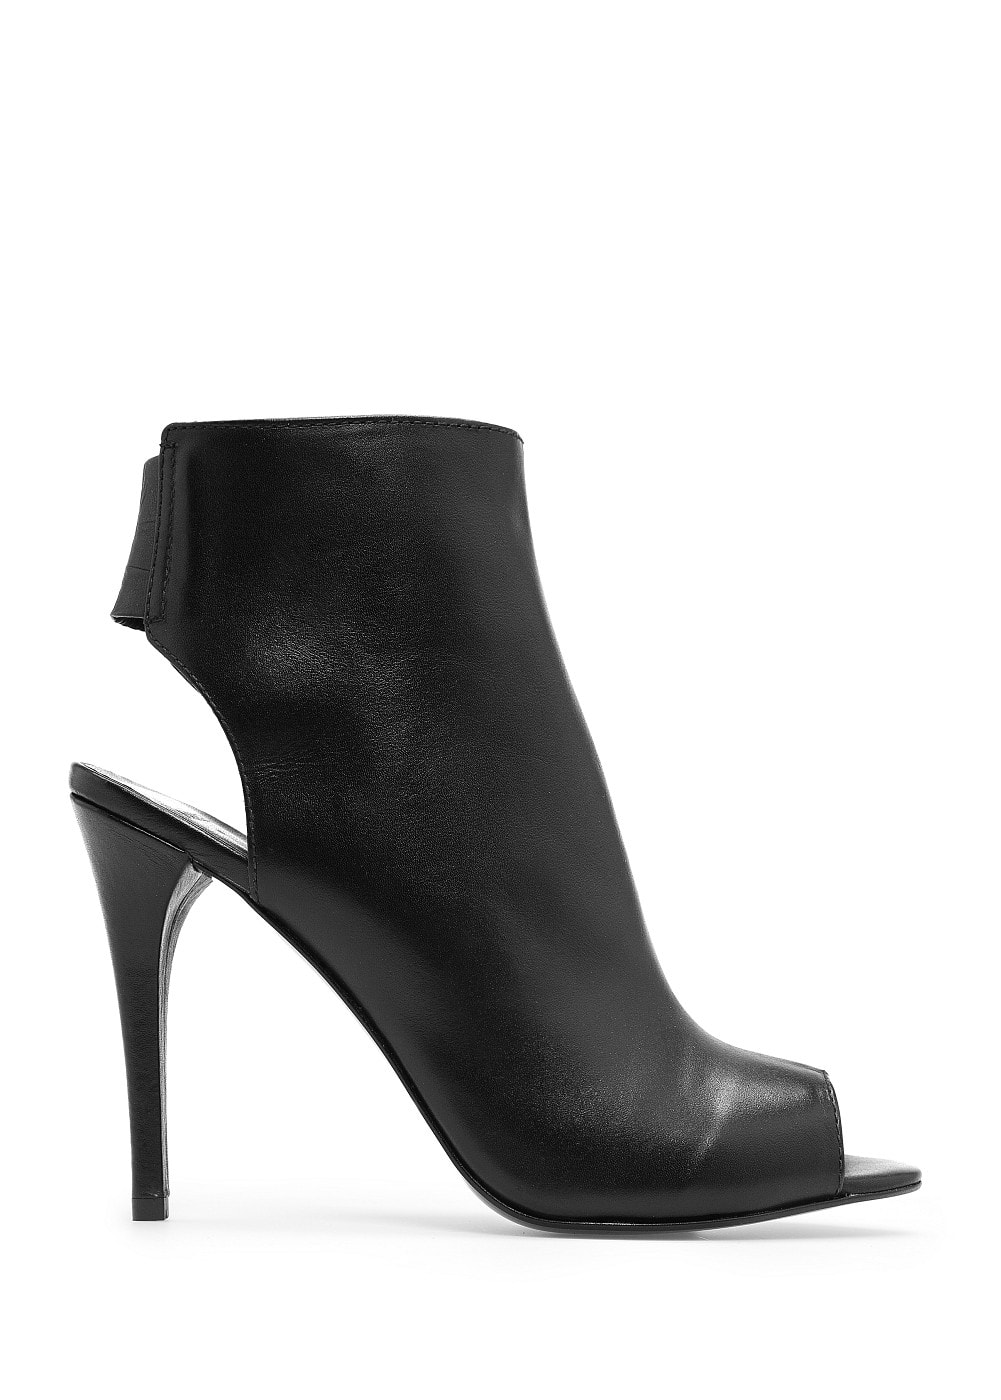 Leather peep-toe ankle boots